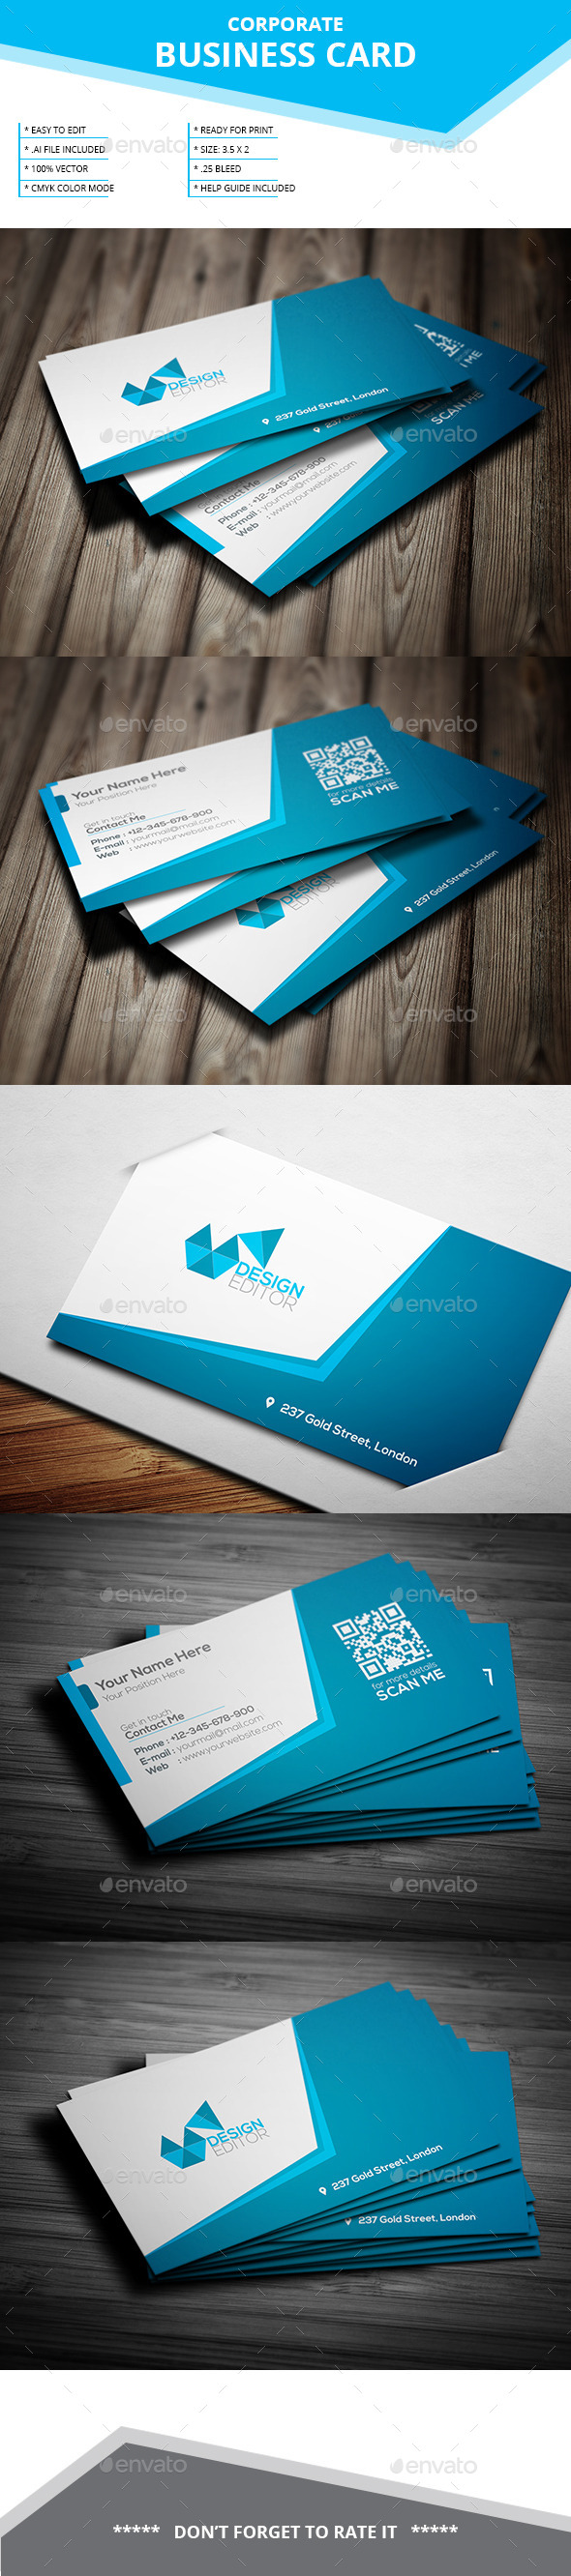 Corporate Buness Card - Corporate Business Cards